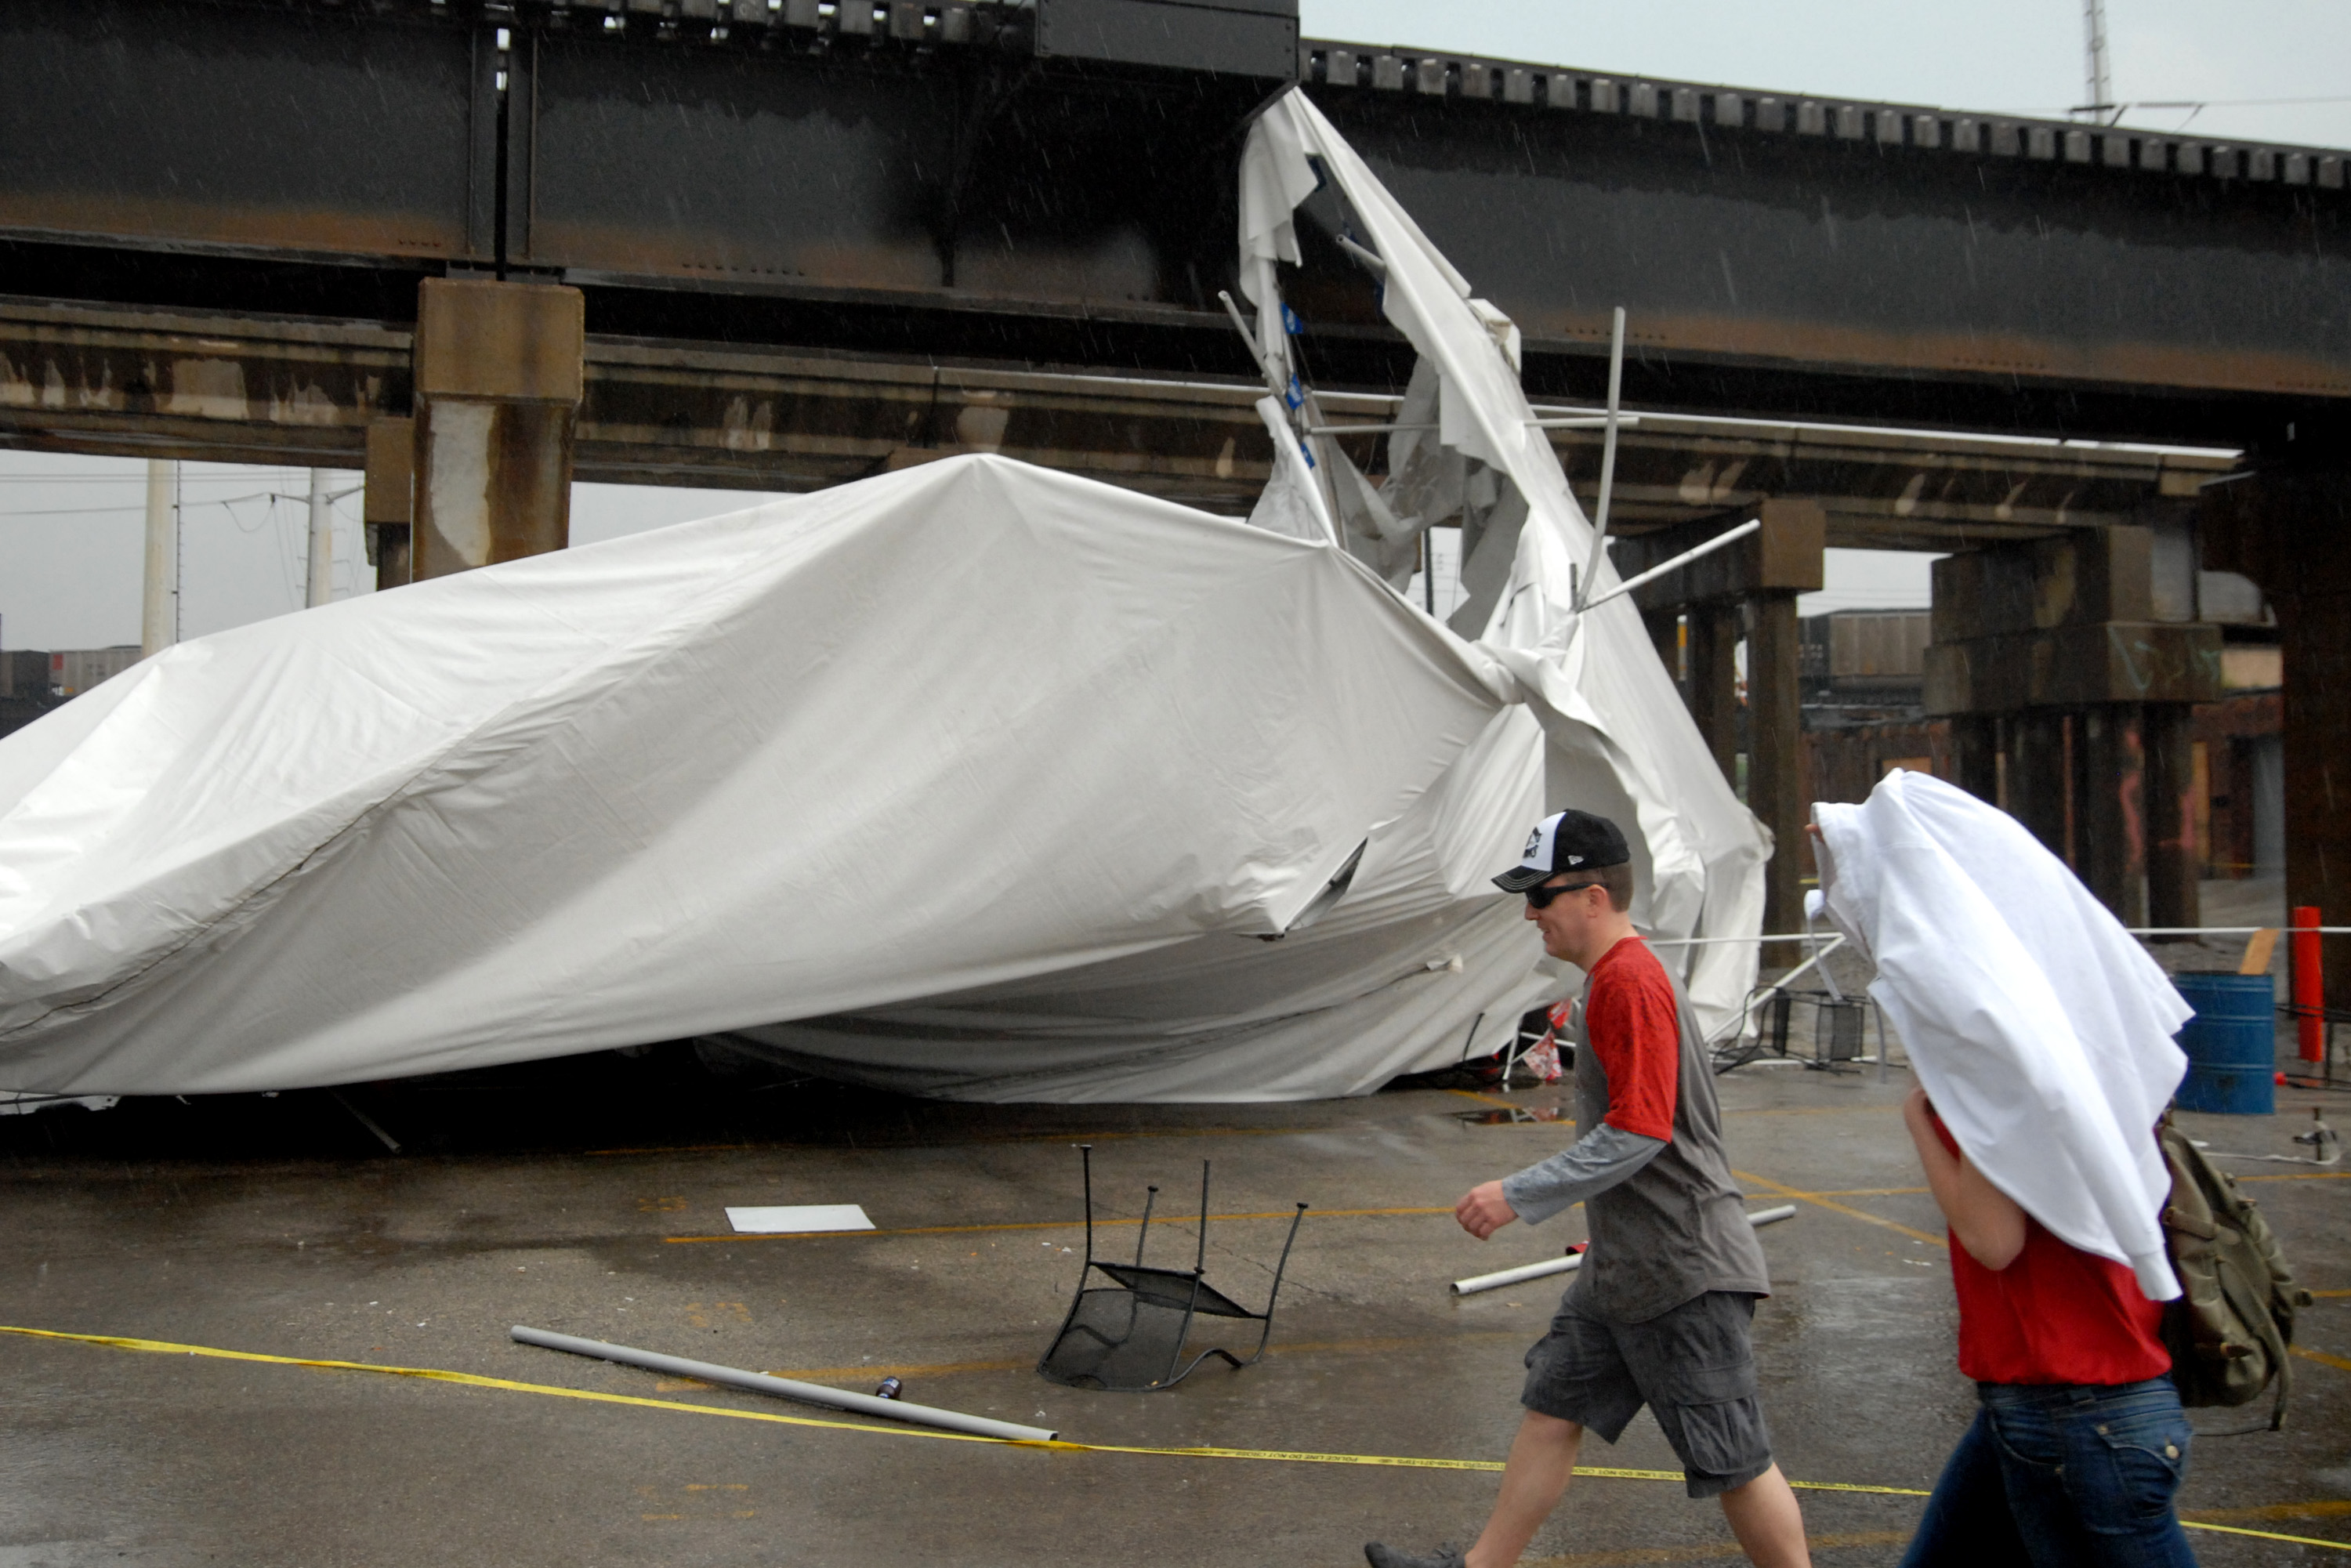 A party tent from Kilroy's Sports Bar in St. Louis rests against a railroad trestle near the bar after storm winds blew through the area following a baseball game between the St. Louis Cardinals and Milwaukee Brewers at nearby Busch Stadium Saturday, April 28, 2012. One person died Saturday and more than a dozen were taken to a hospital with injuries after high winds blew over a beer tent near Busch Stadium in St. Louis. (AP Photo/Sid Hastings)